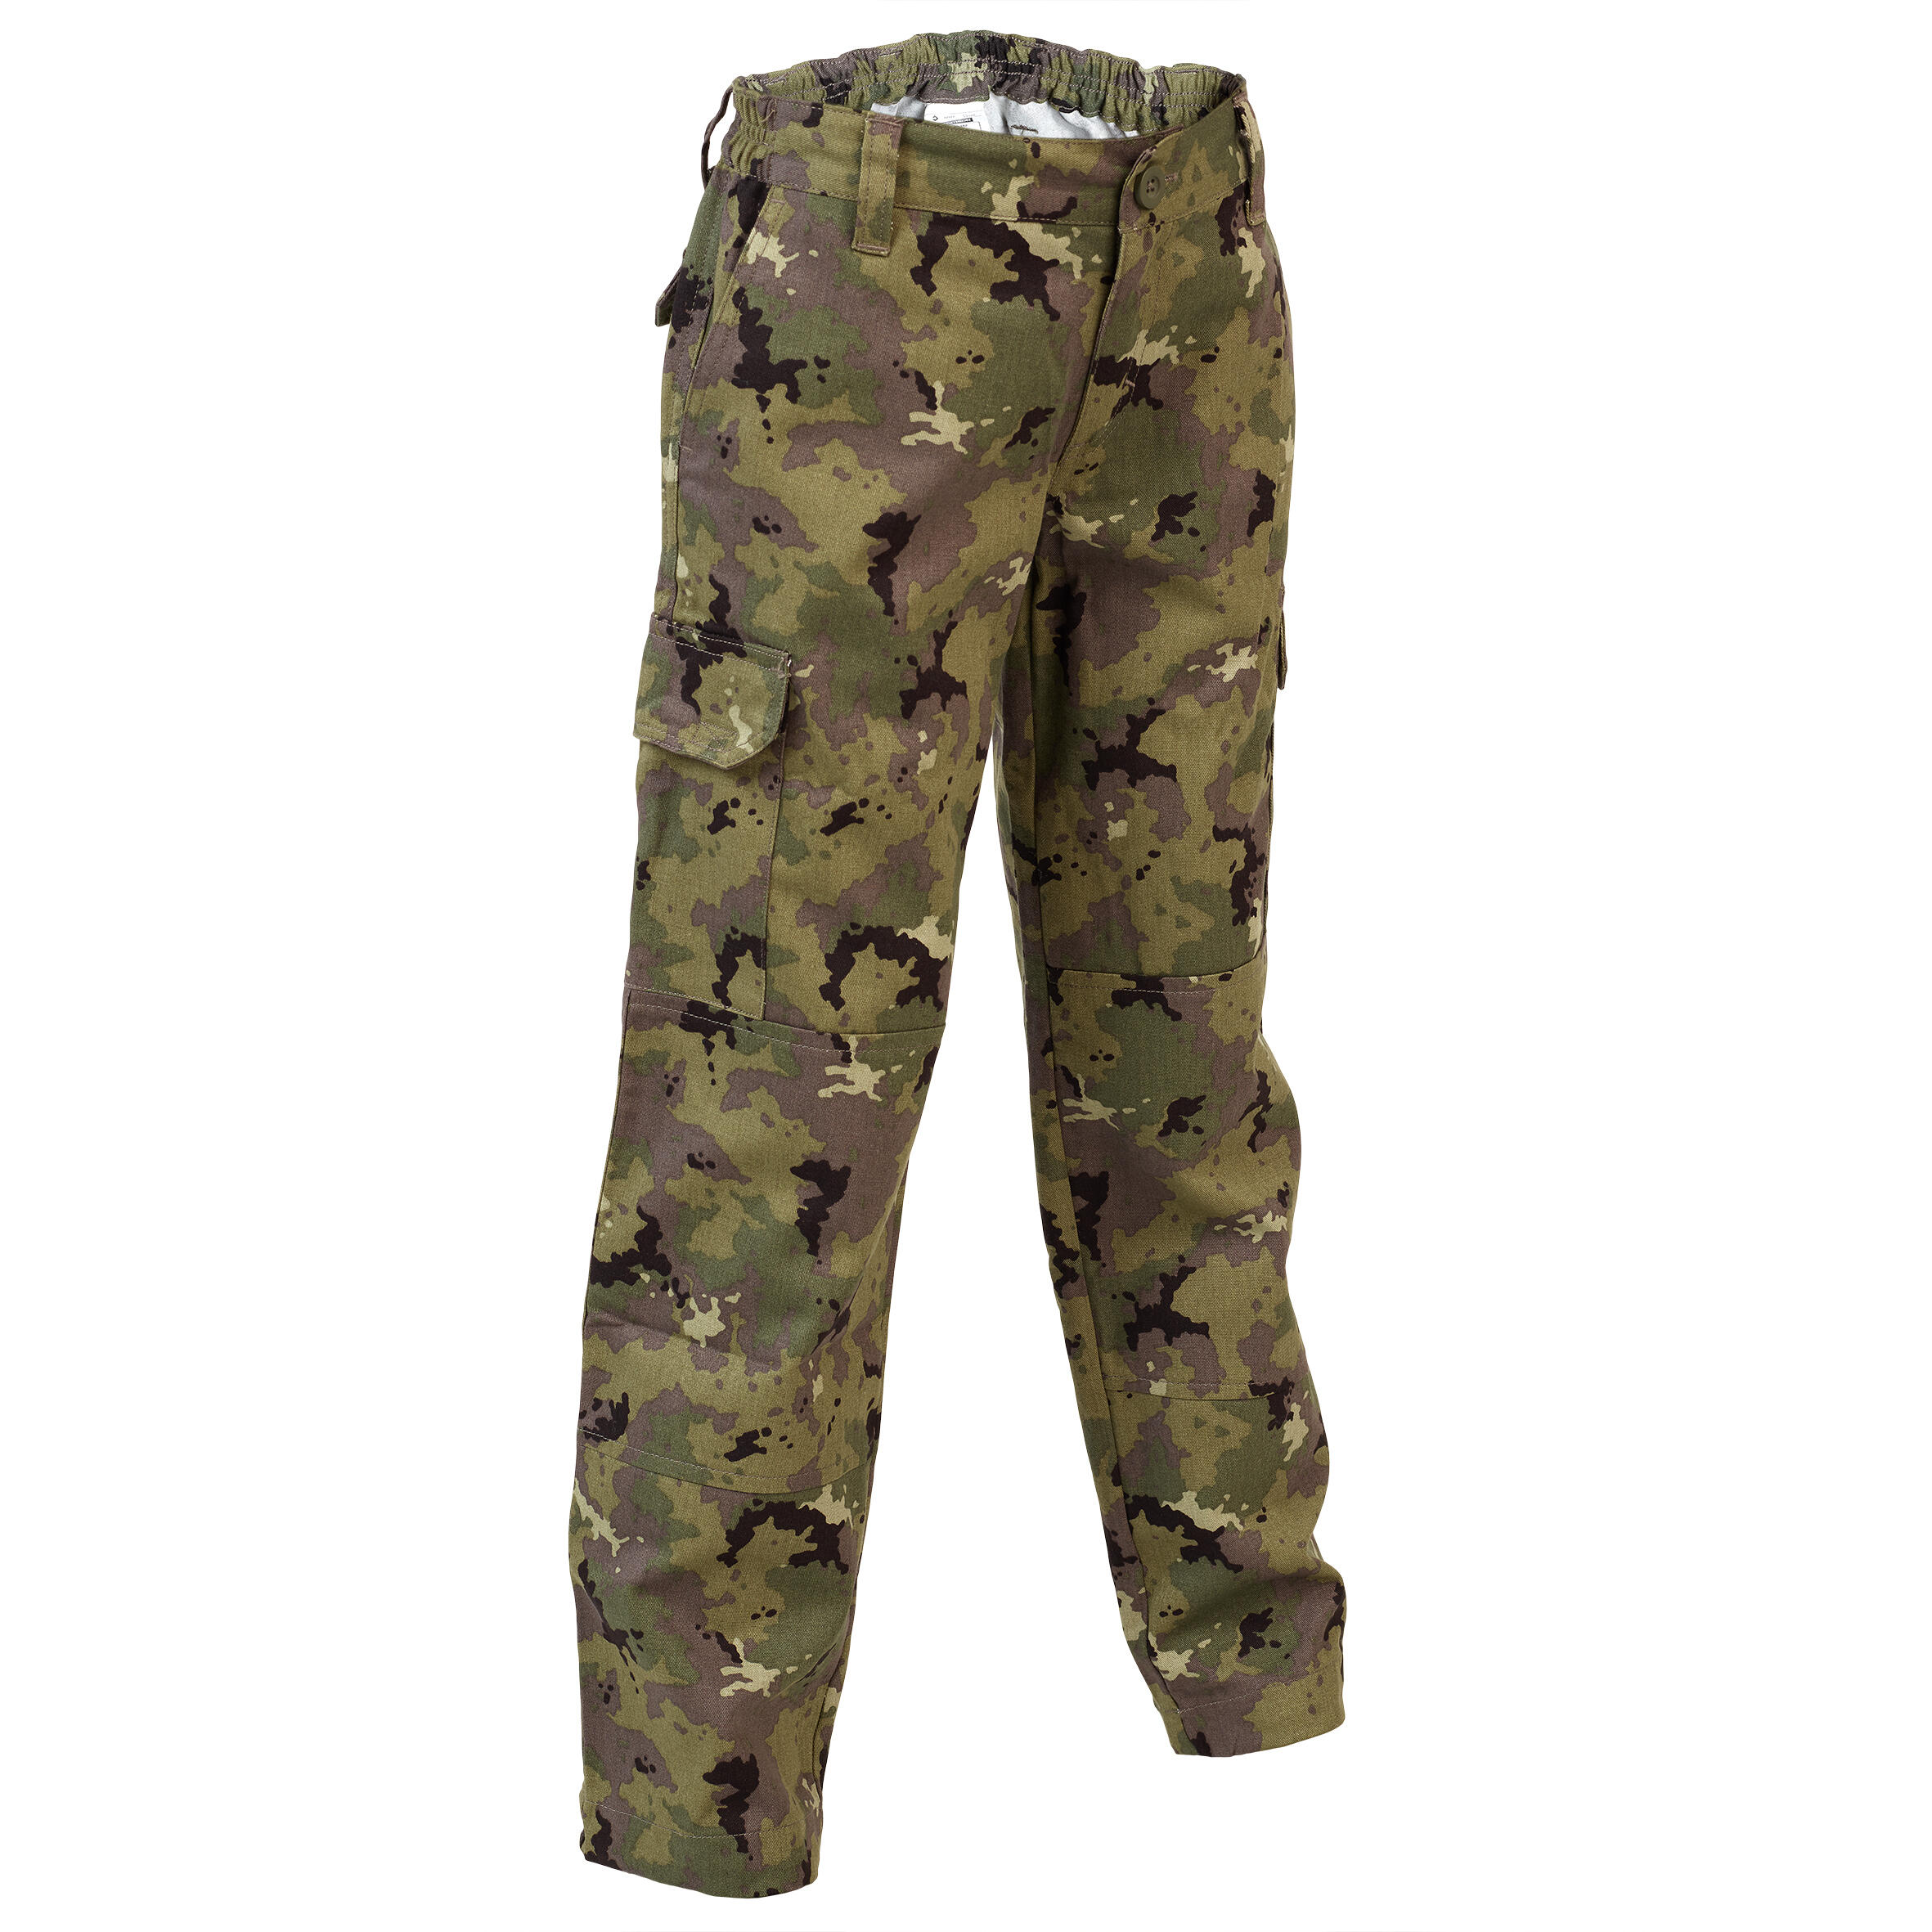 popular brand 100% top quality promo code Pantalon chasse junior camouflage